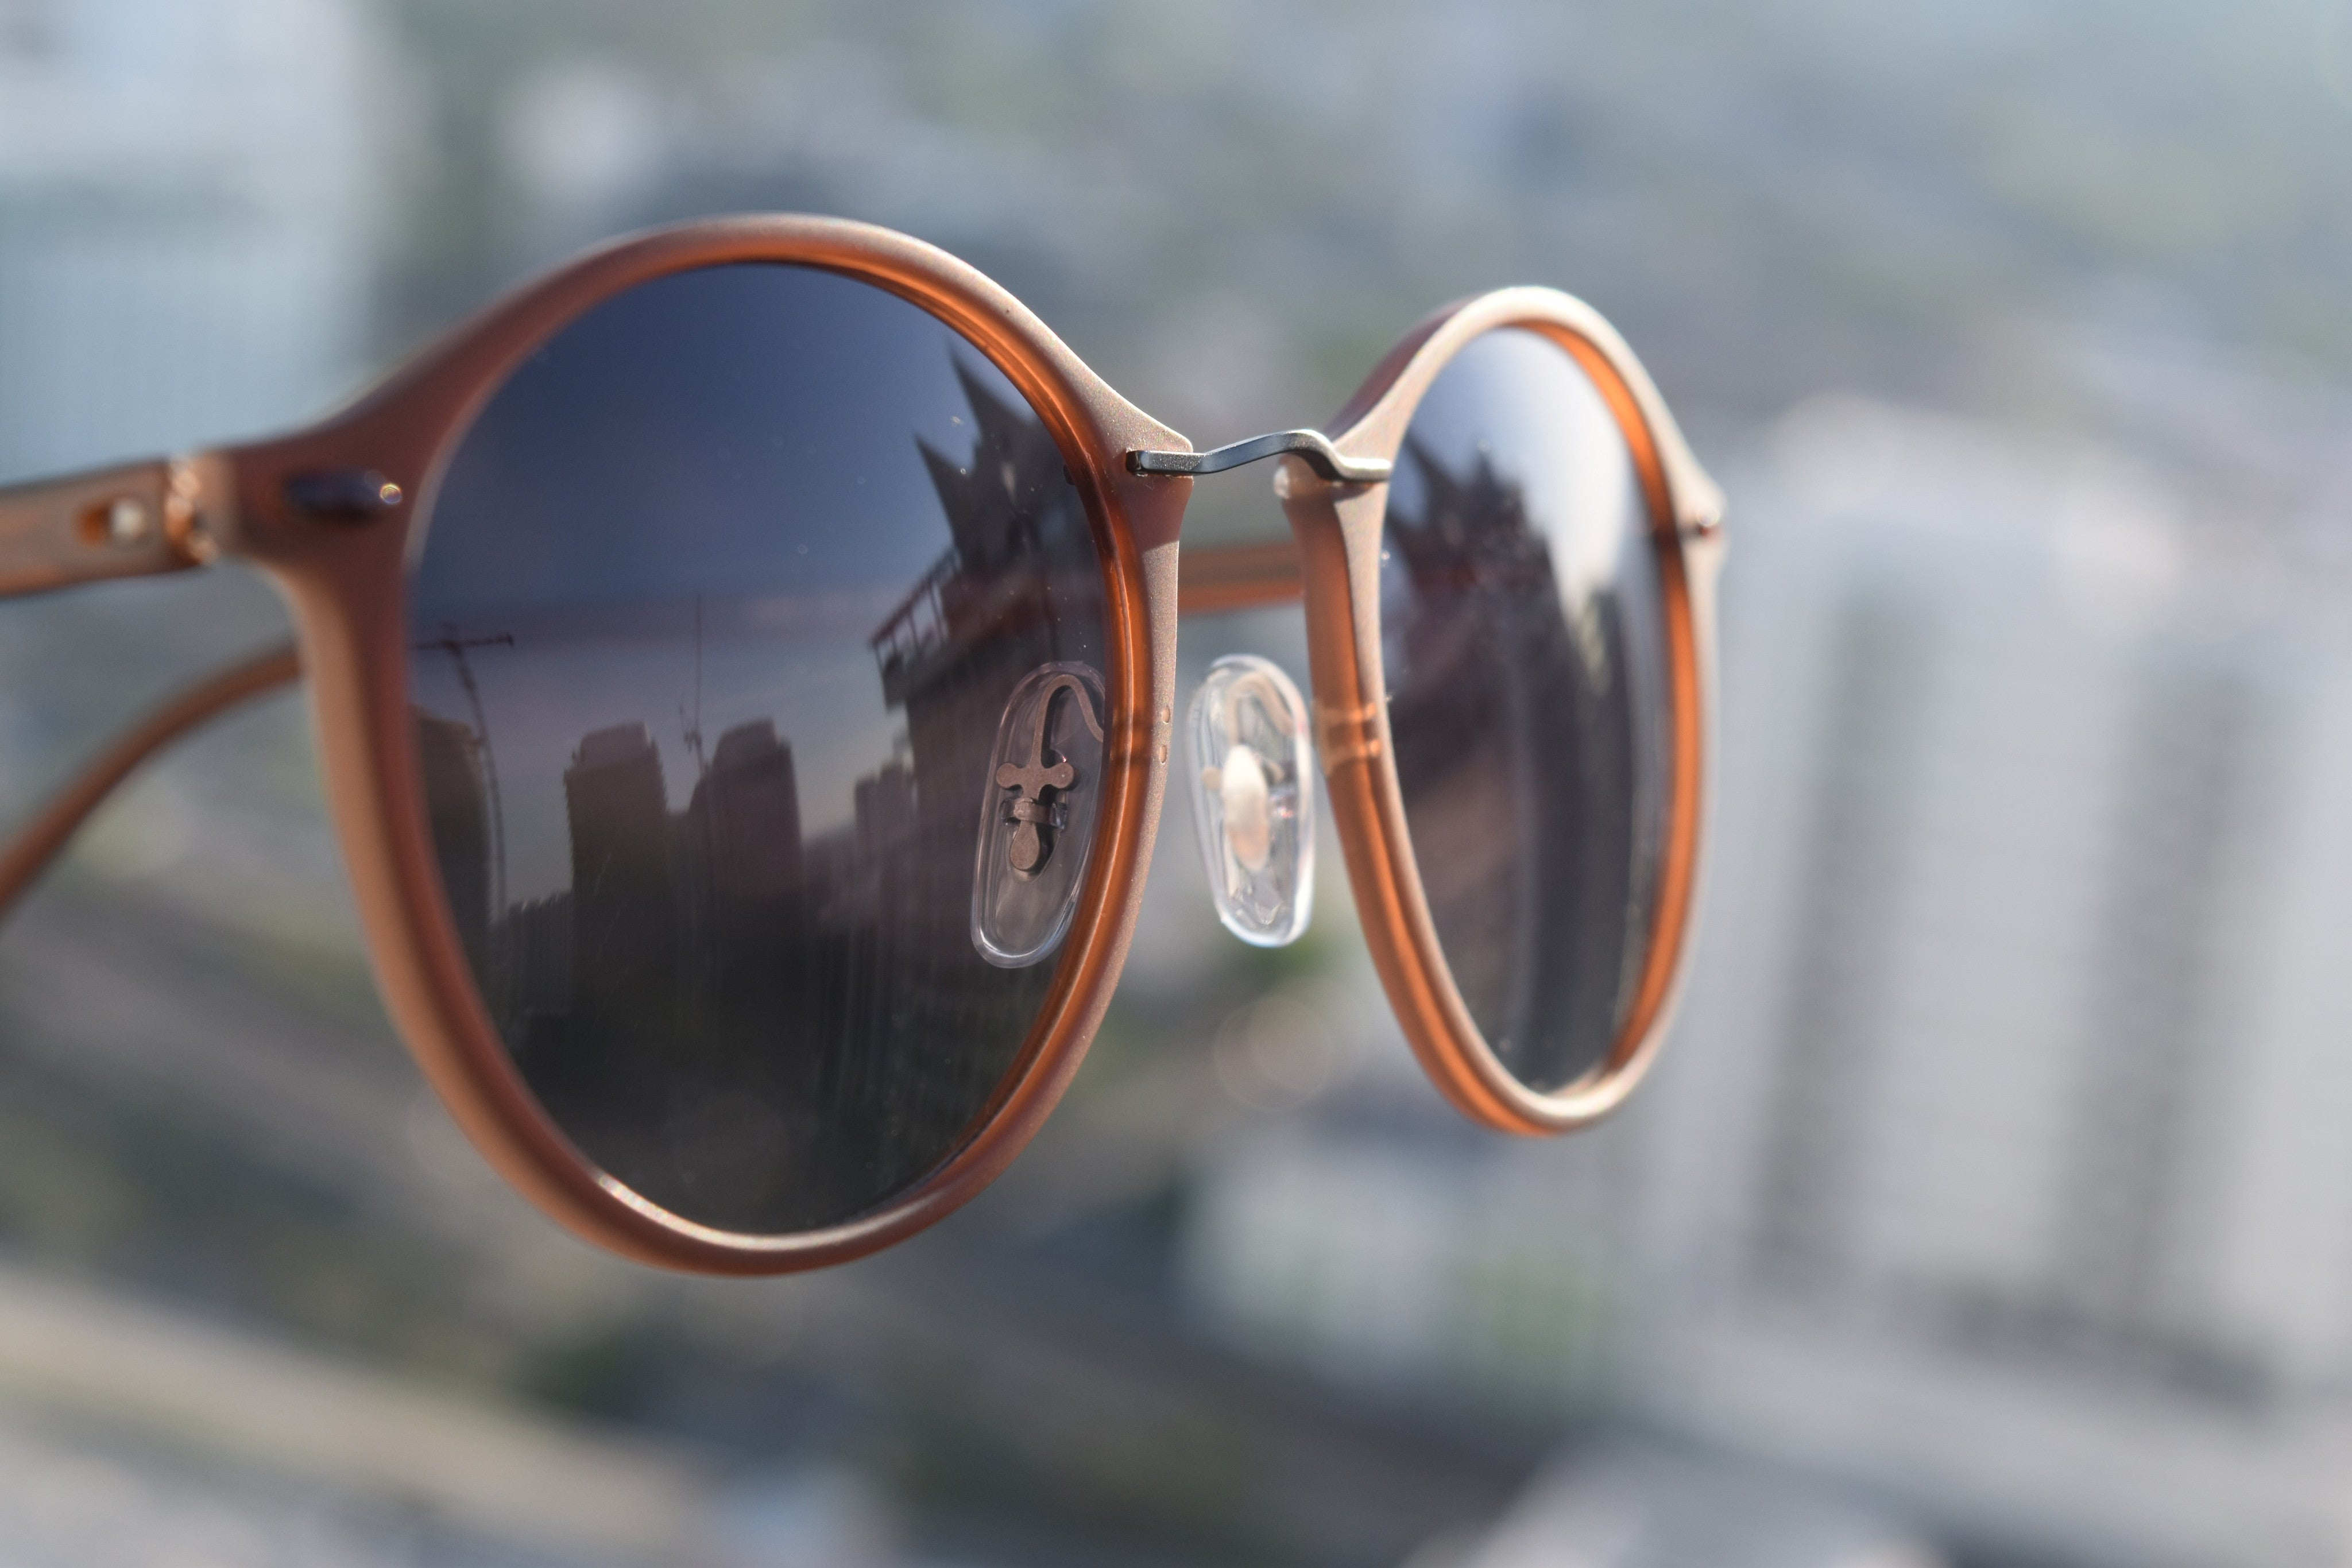 Polarized Sunglasses-Why Are They Important?